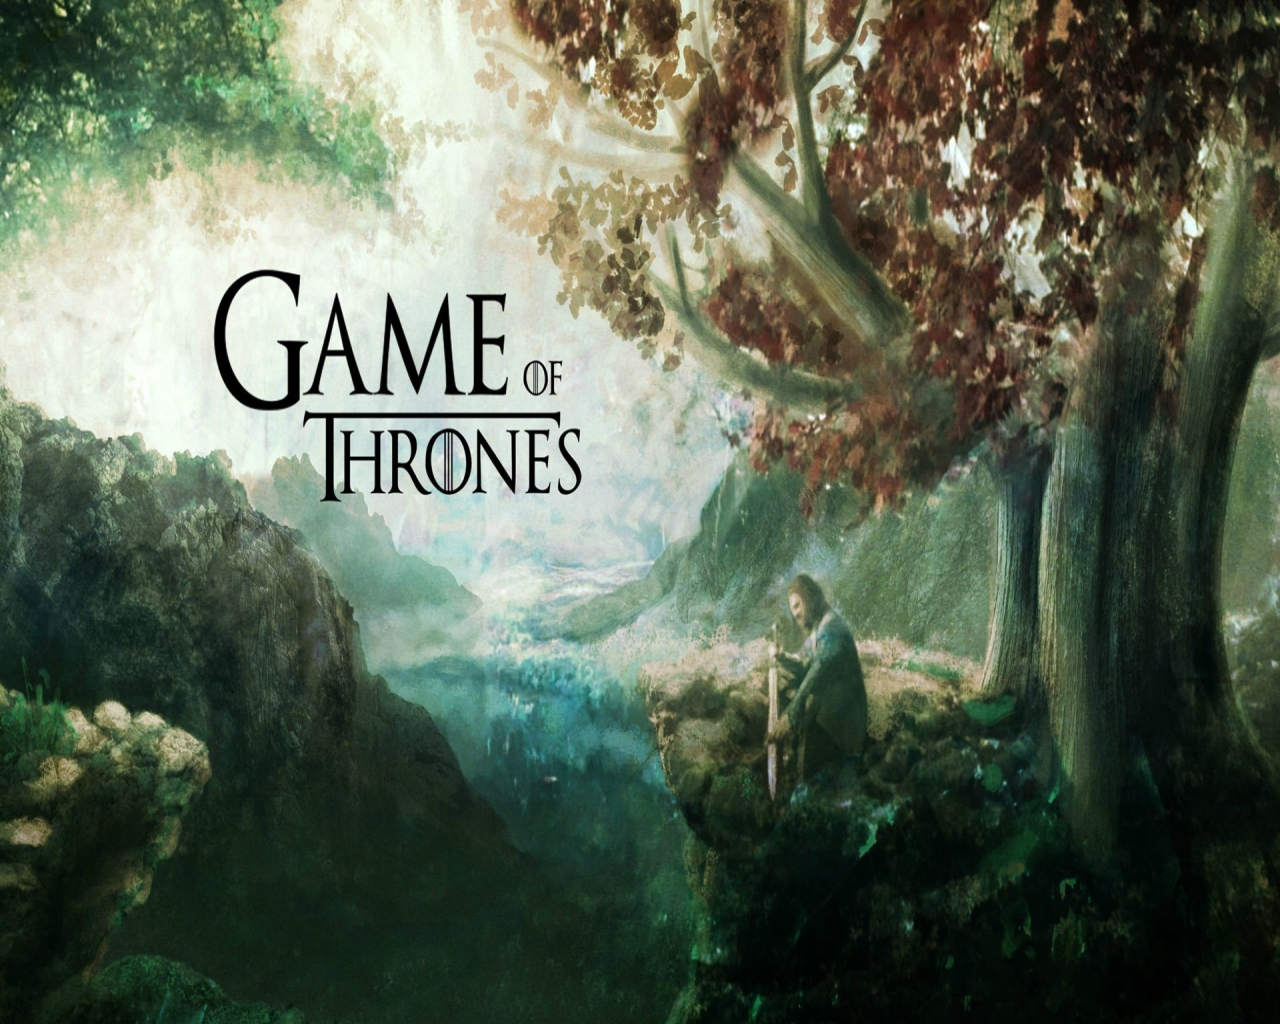 Movies Wallpapers Game Of Thrones Tv Series 6679 1920x1080 pixel 1280x1024